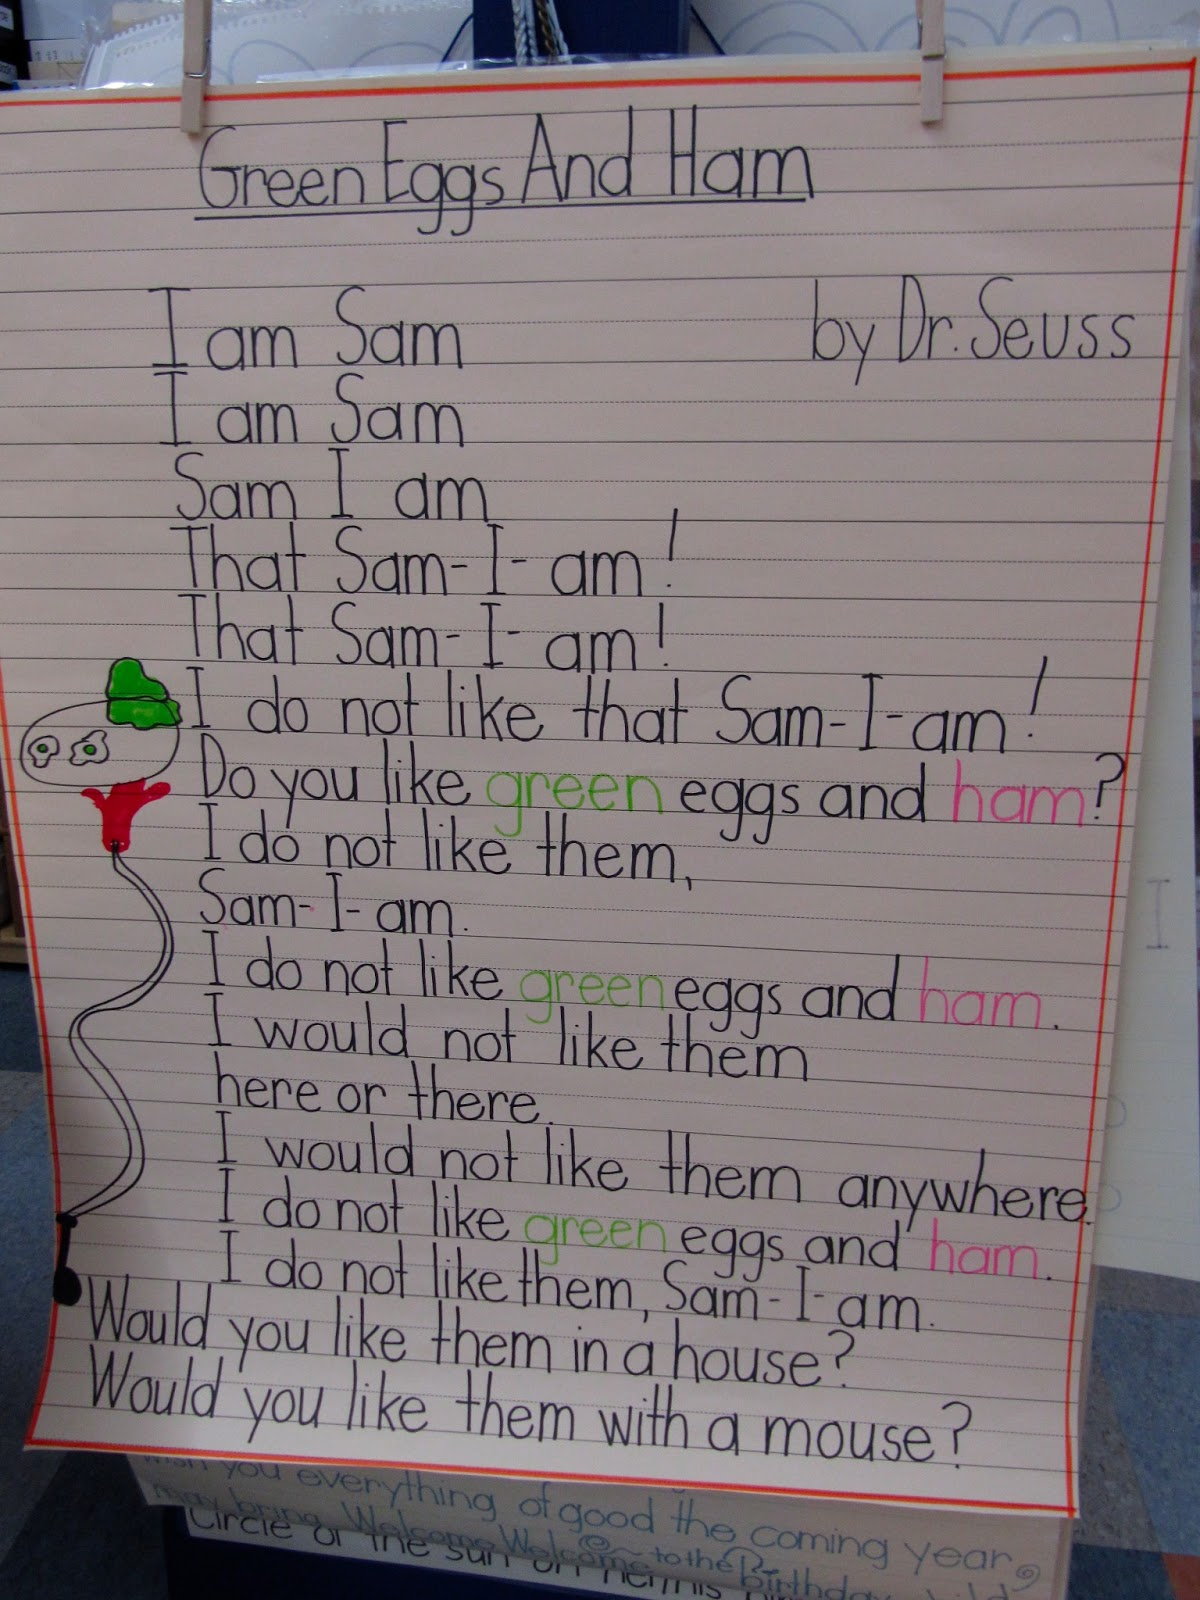 Inspirational Dr. Seuss quotes on love, life, and learning